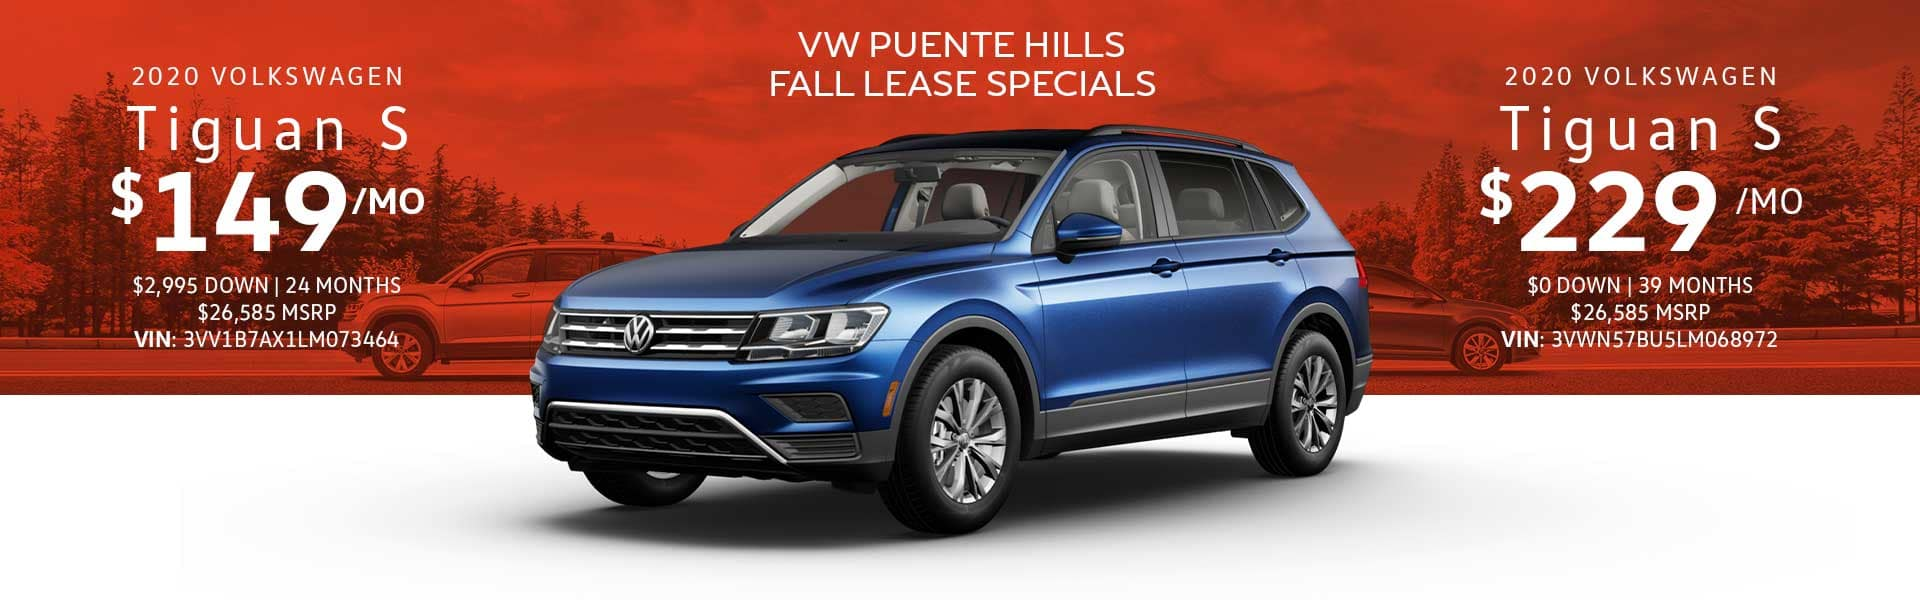 new tiguan s lease special